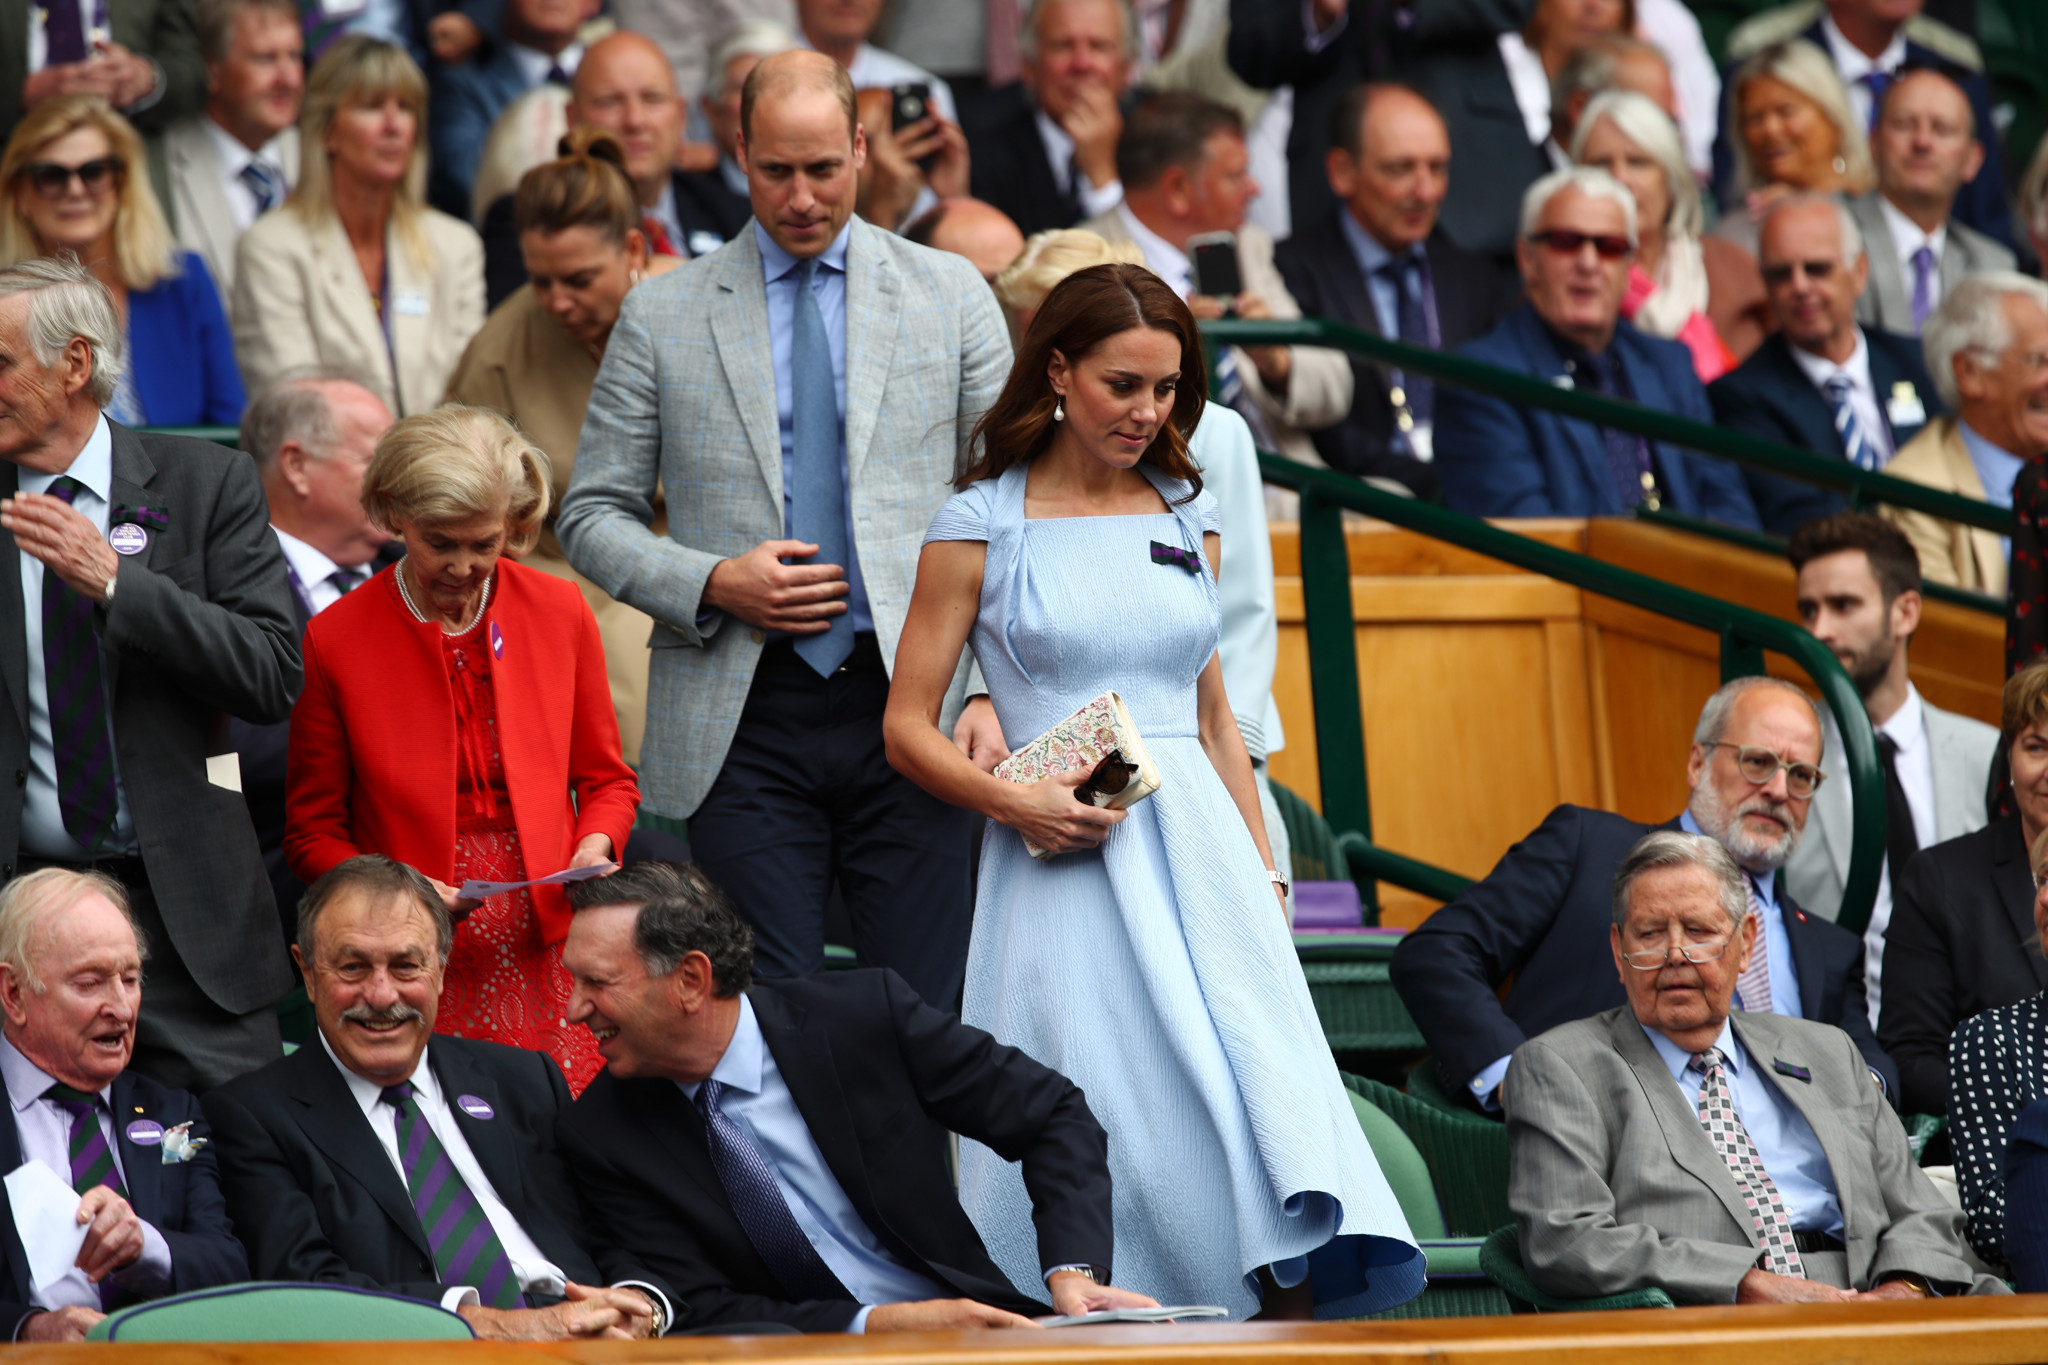 Catherine, Duchess of Cambridge and Prince William, Duke of Cambridge watched the contest from the Royal Box ©Getty Images